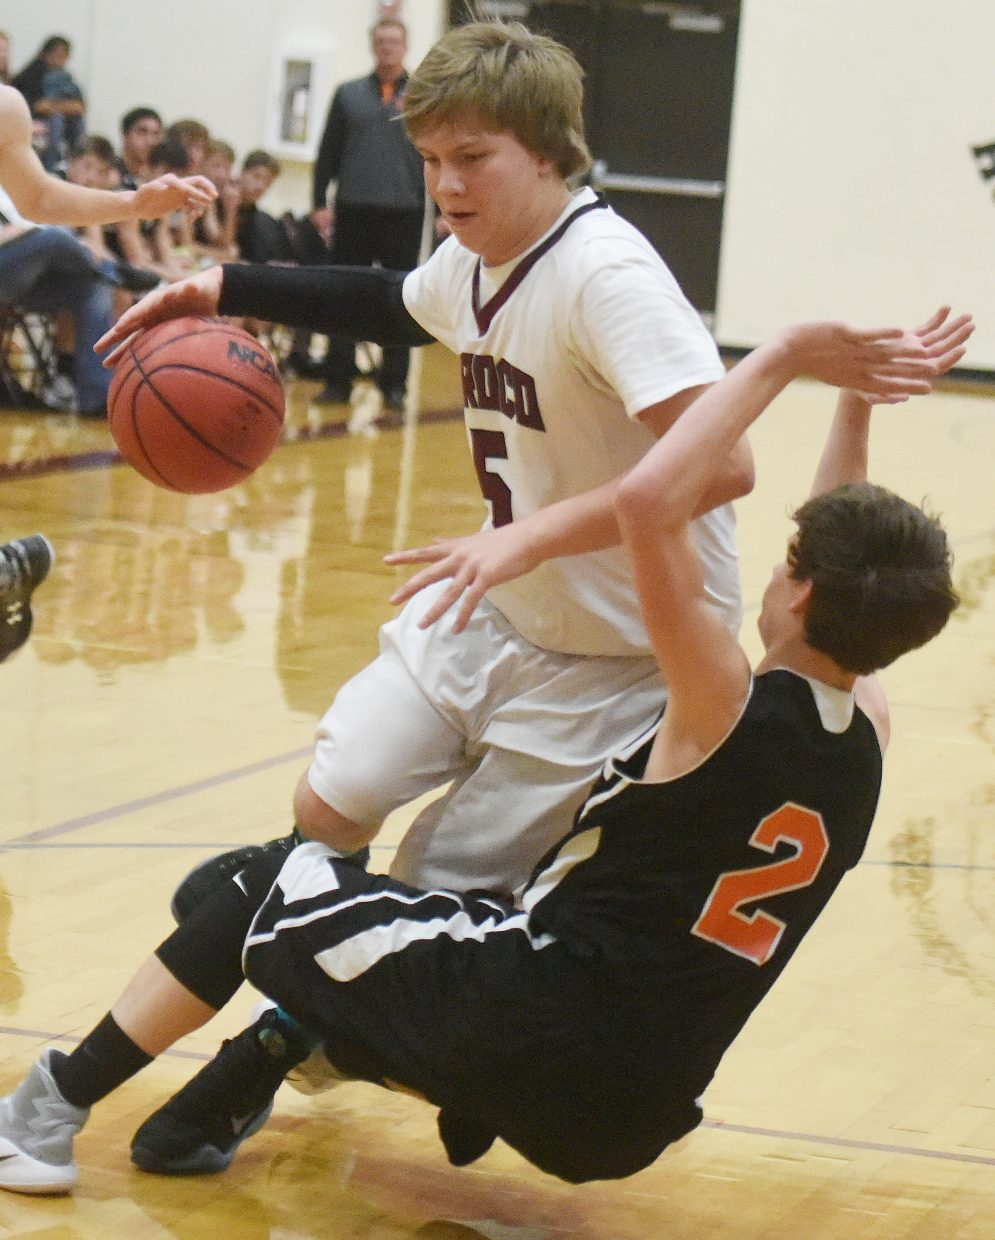 Soroco's Colton Stroup and Hayden's Garrett St. Clair collide Saturday as the Rams beat the Tigers, 48-38.